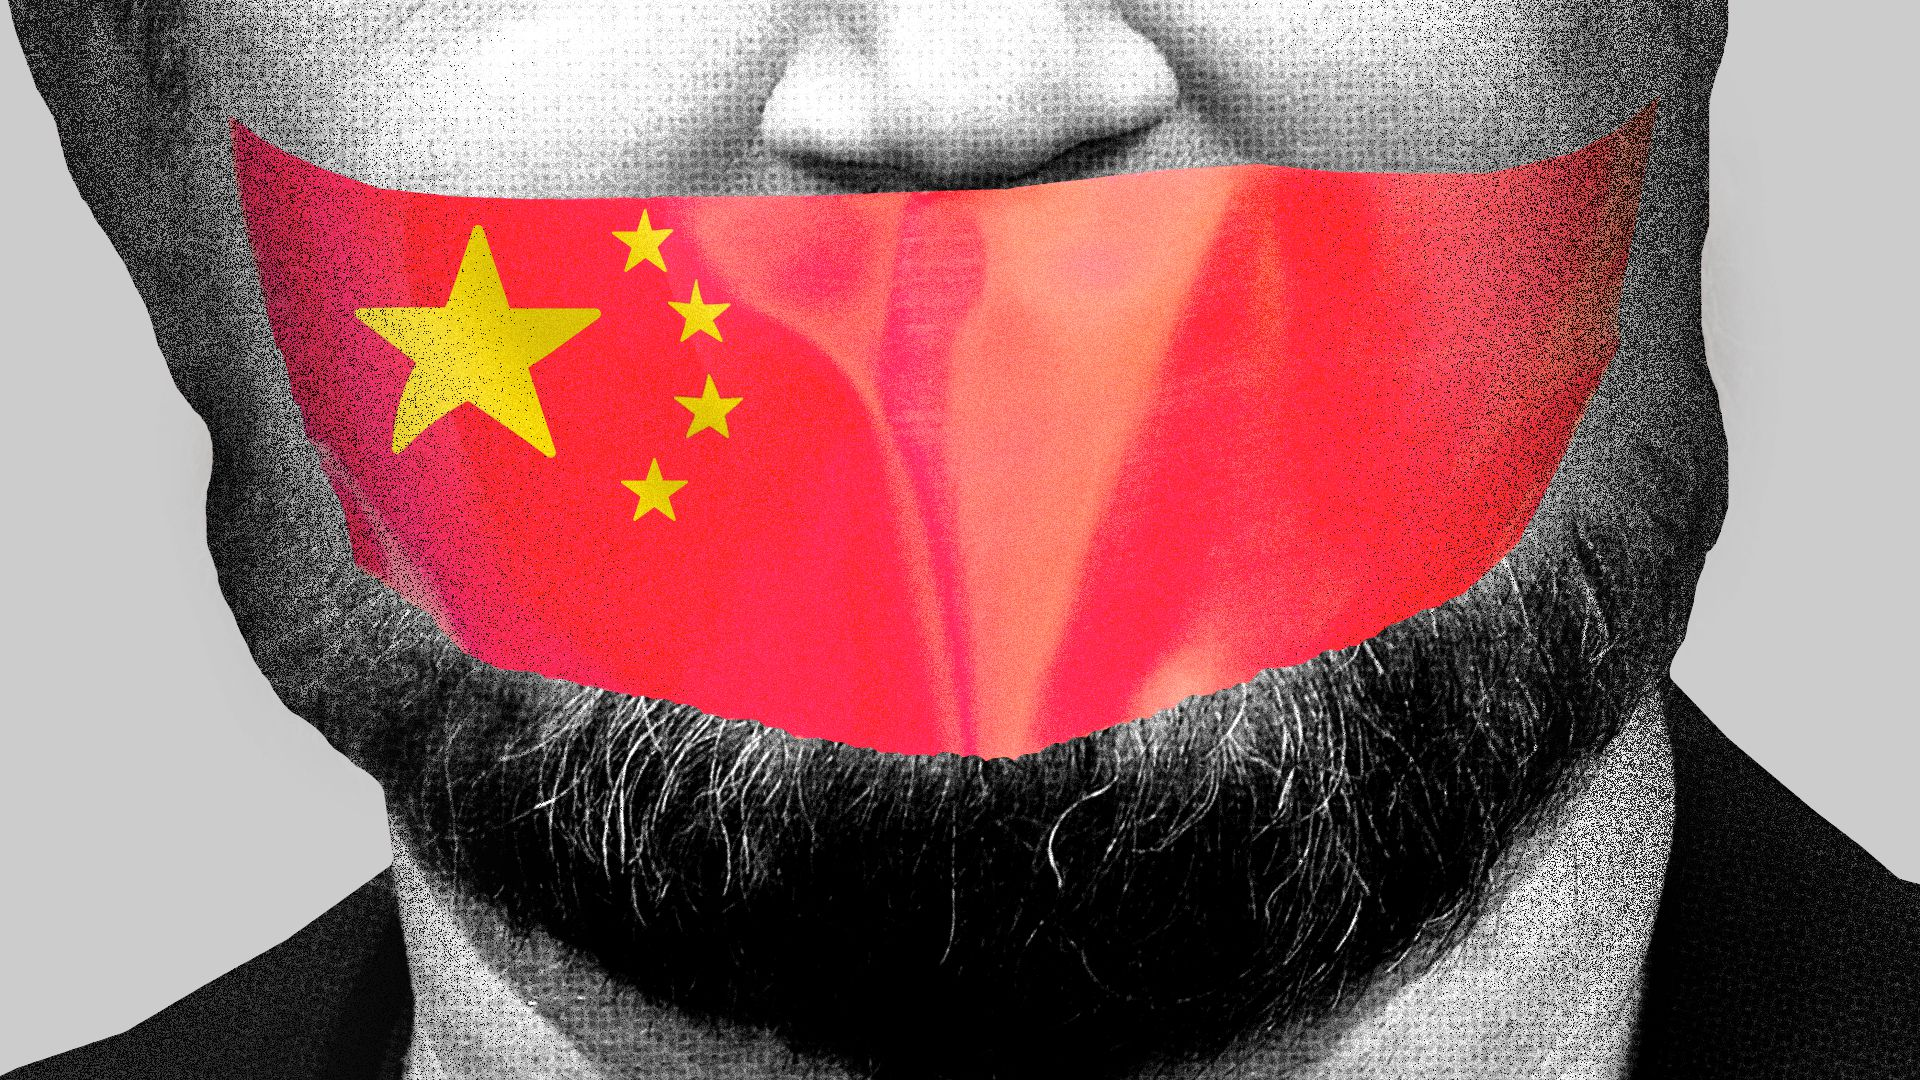 llustration of a close up of Daryl Morey's face with tape over his mouth, the tape is the Chinese flag.